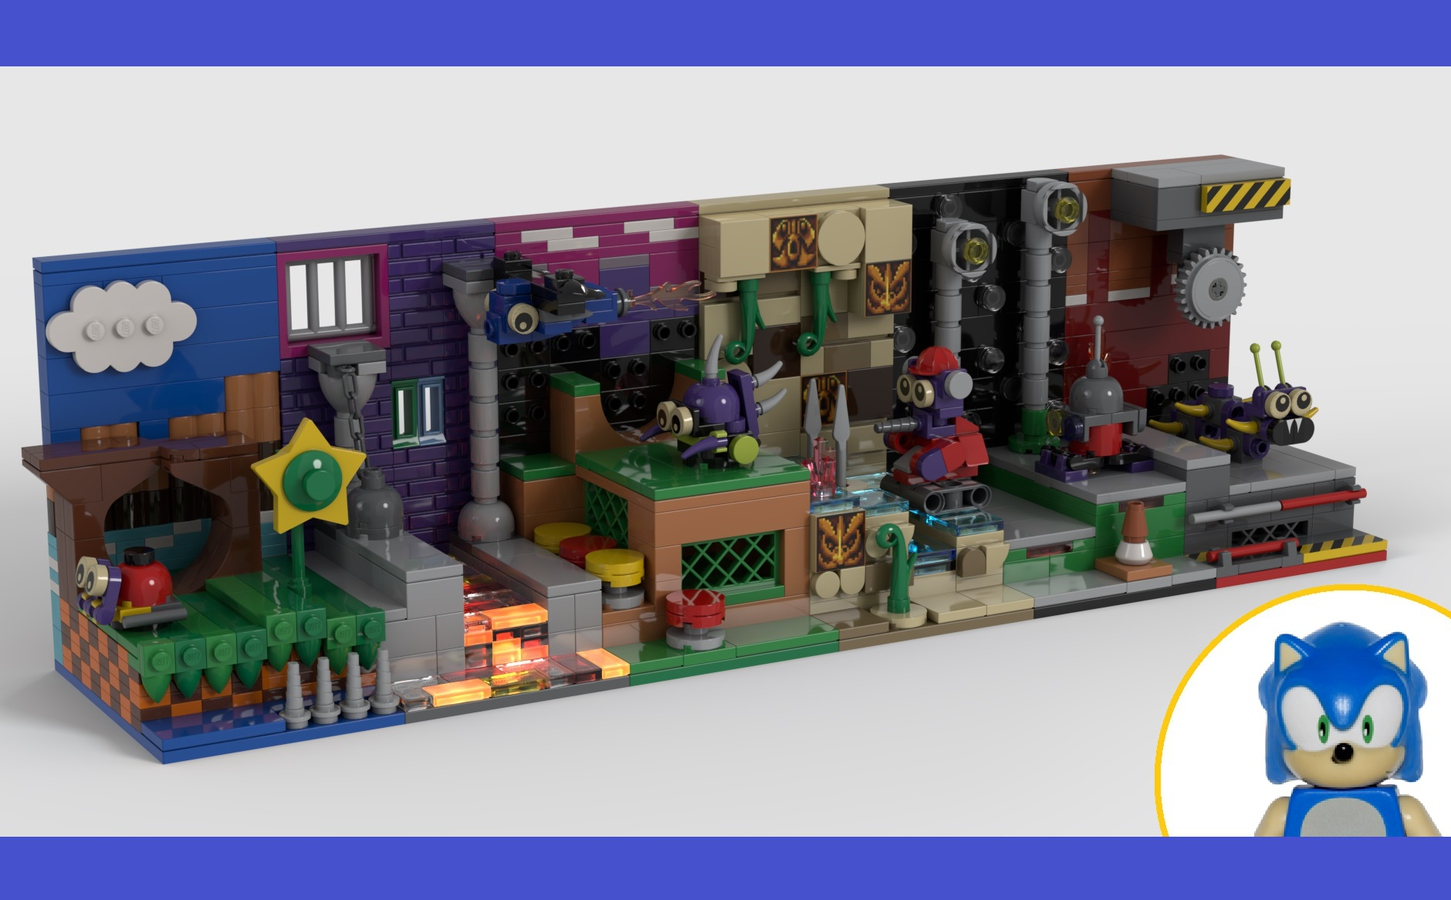 Lego Ideas On Twitter This Awesome Sonic The Hedgehog Mini Display Set Combines All The Zones From The Original Sonic The Hedgehog This Micro Diorama Build By Divingfaces 5018 On Legoideas Is